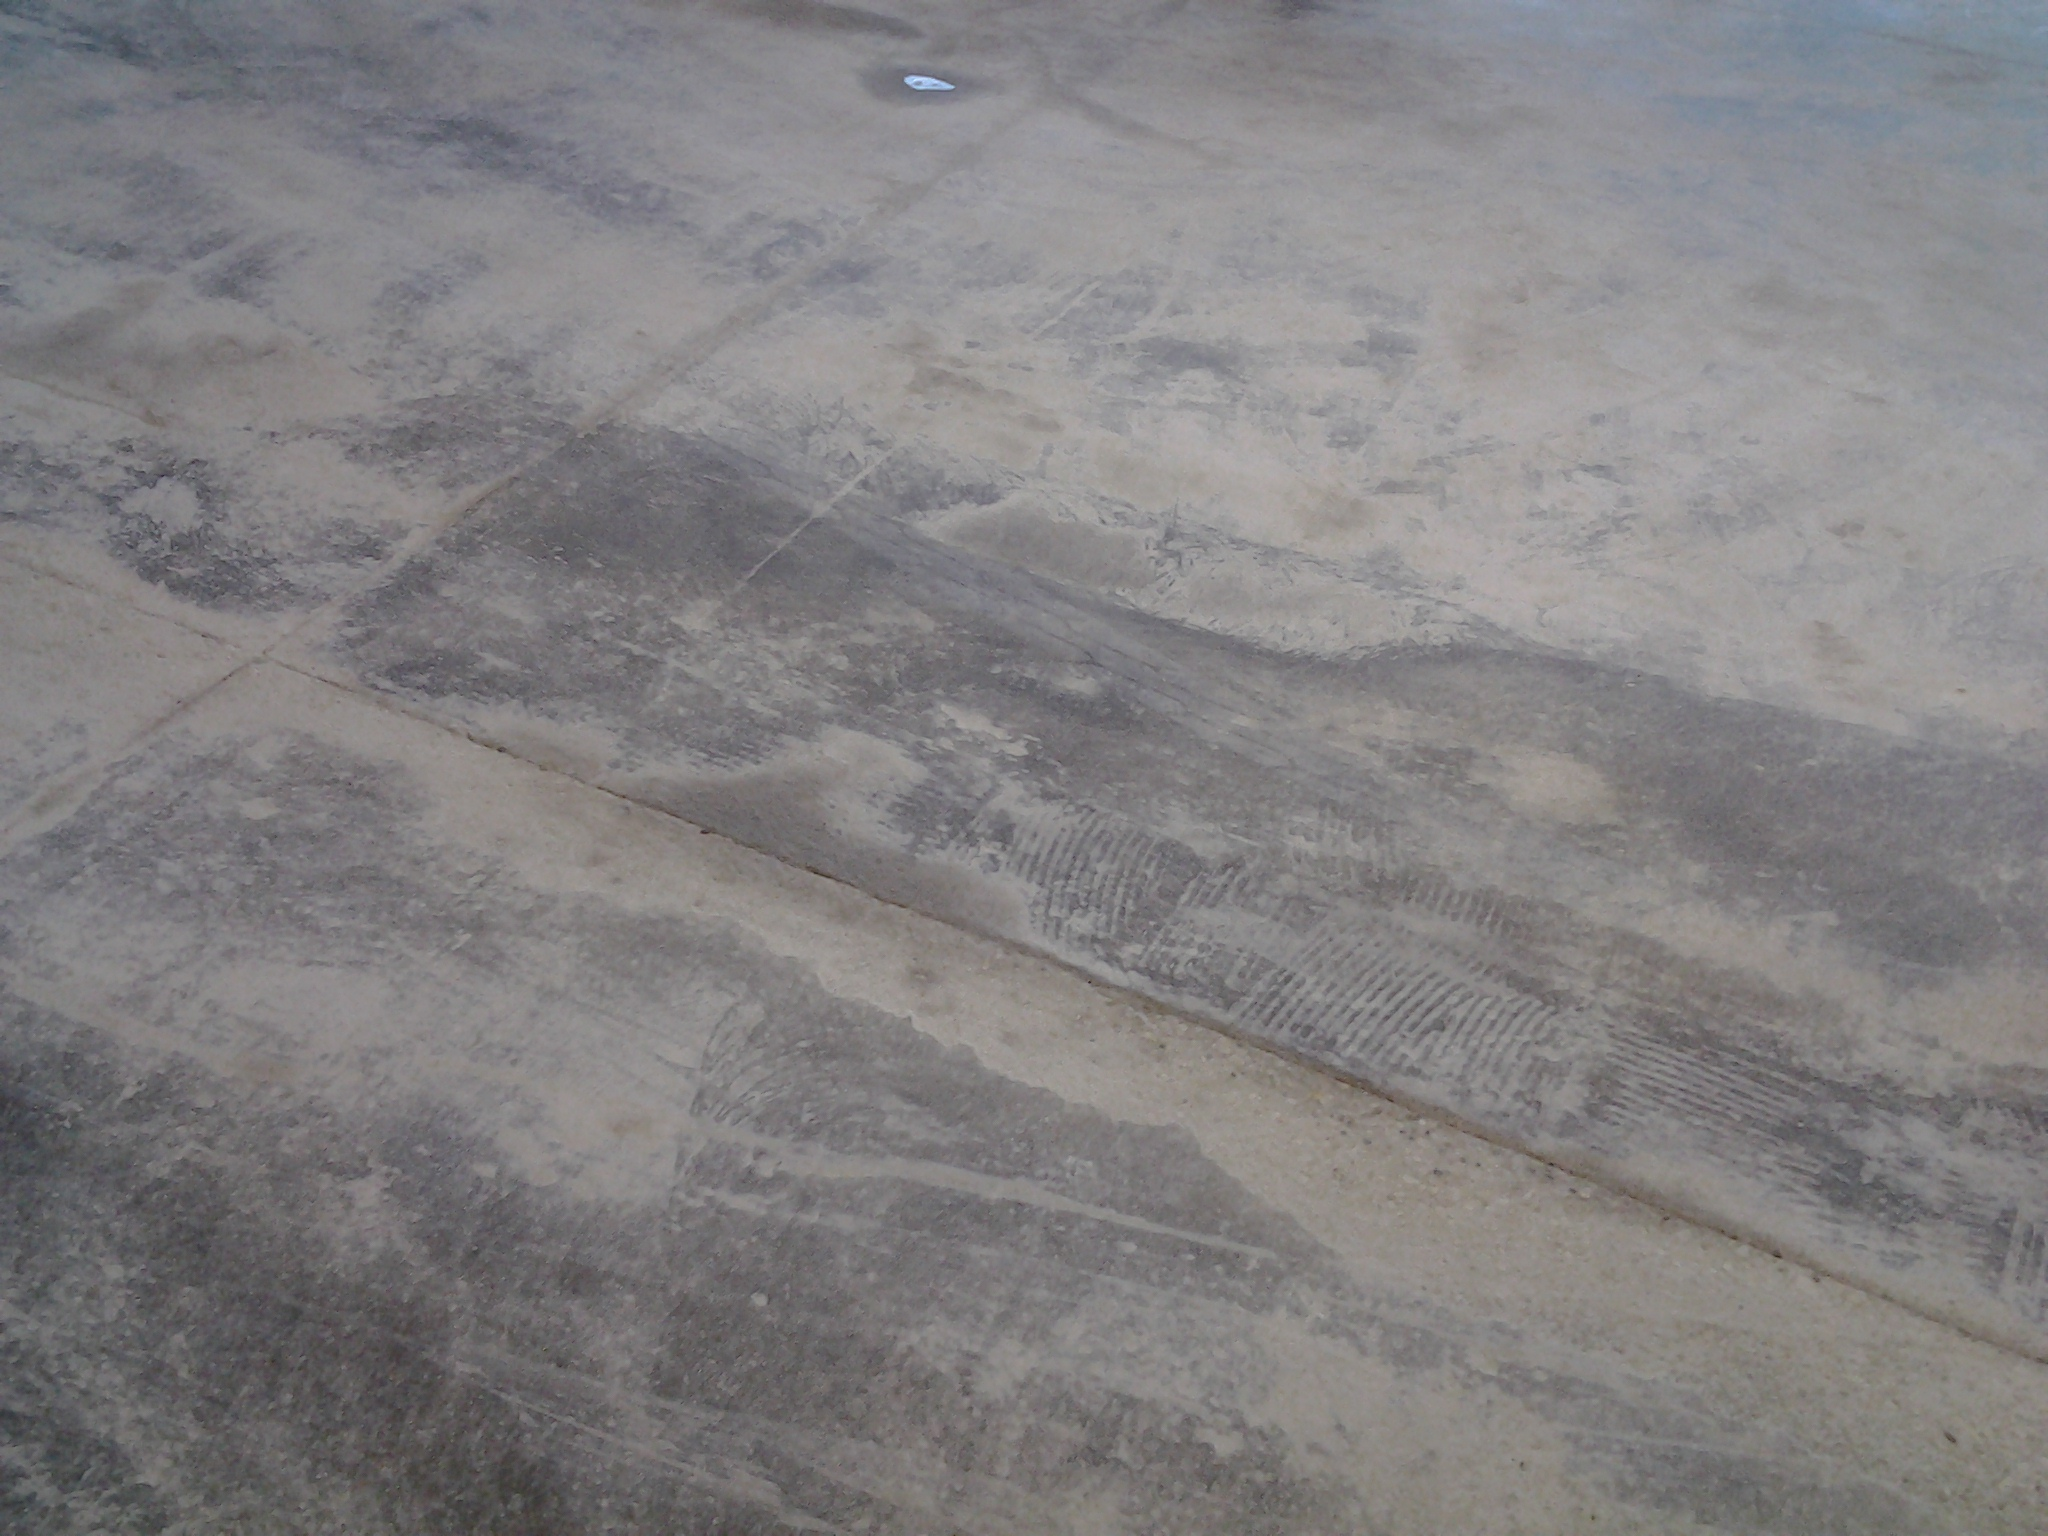 Polishmaxx polished concrete contractor in iowaillinois floor ia concrete slab after floor preparation tile grout removal dailygadgetfo Choice Image